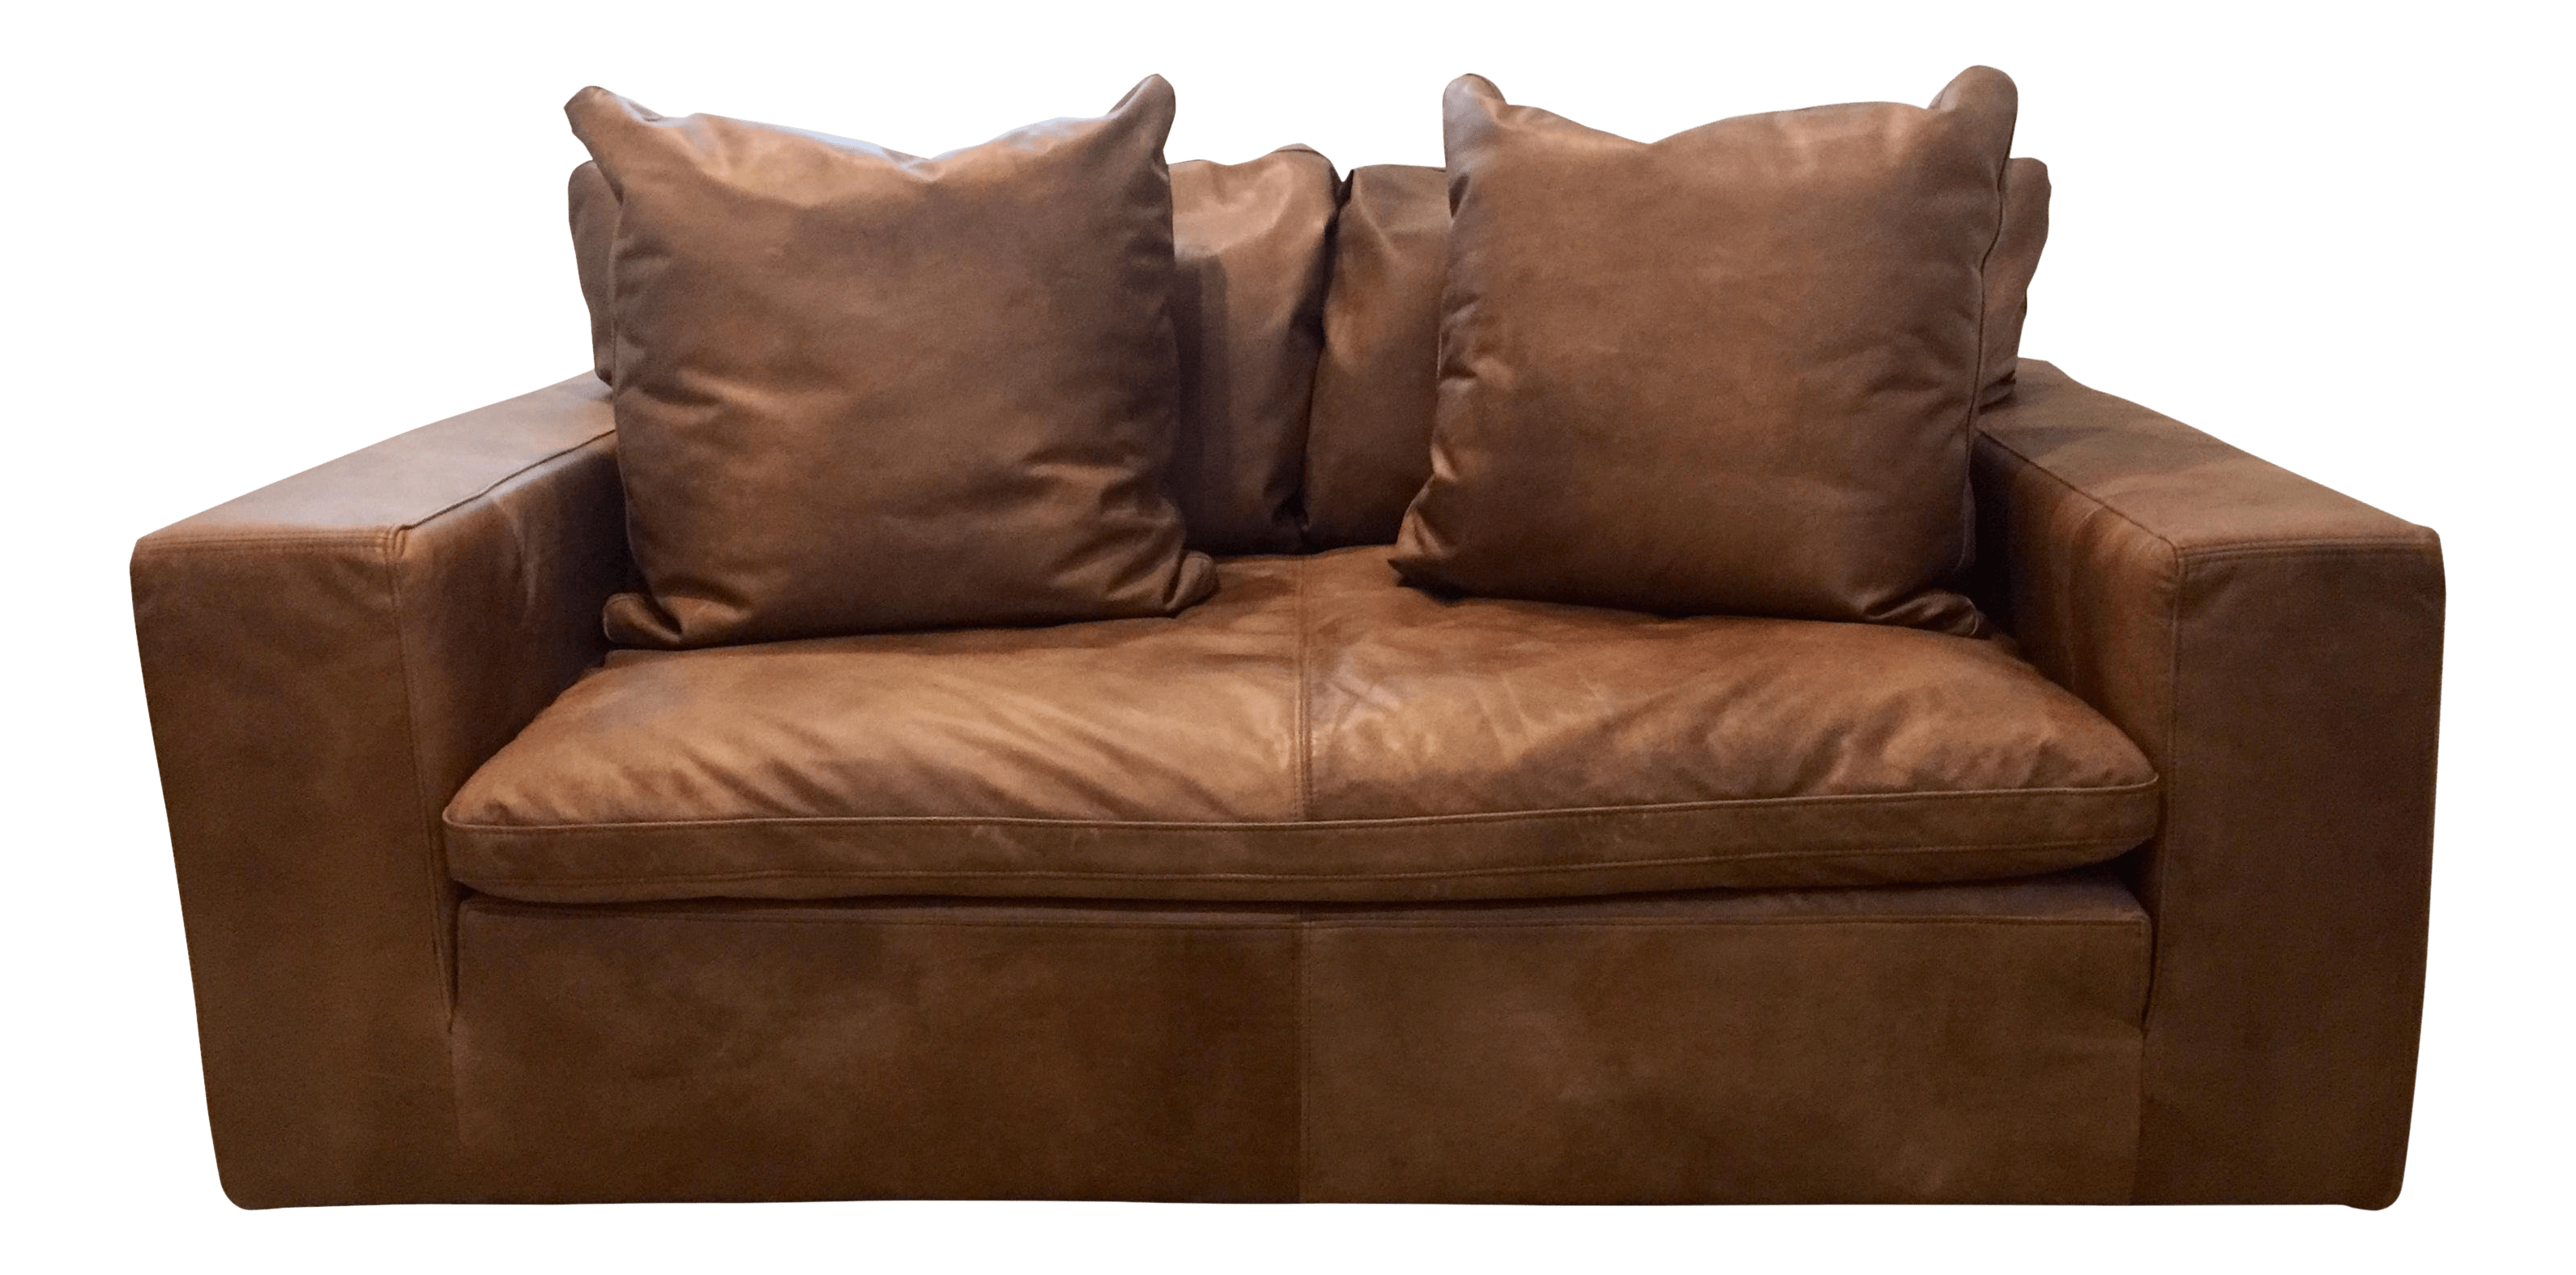 cloud track arm leather two seat cushion sofa antique chaise longue daybed couch settee gently used restoration hardware furniture up to 50 off at chairish modern brown loveseat